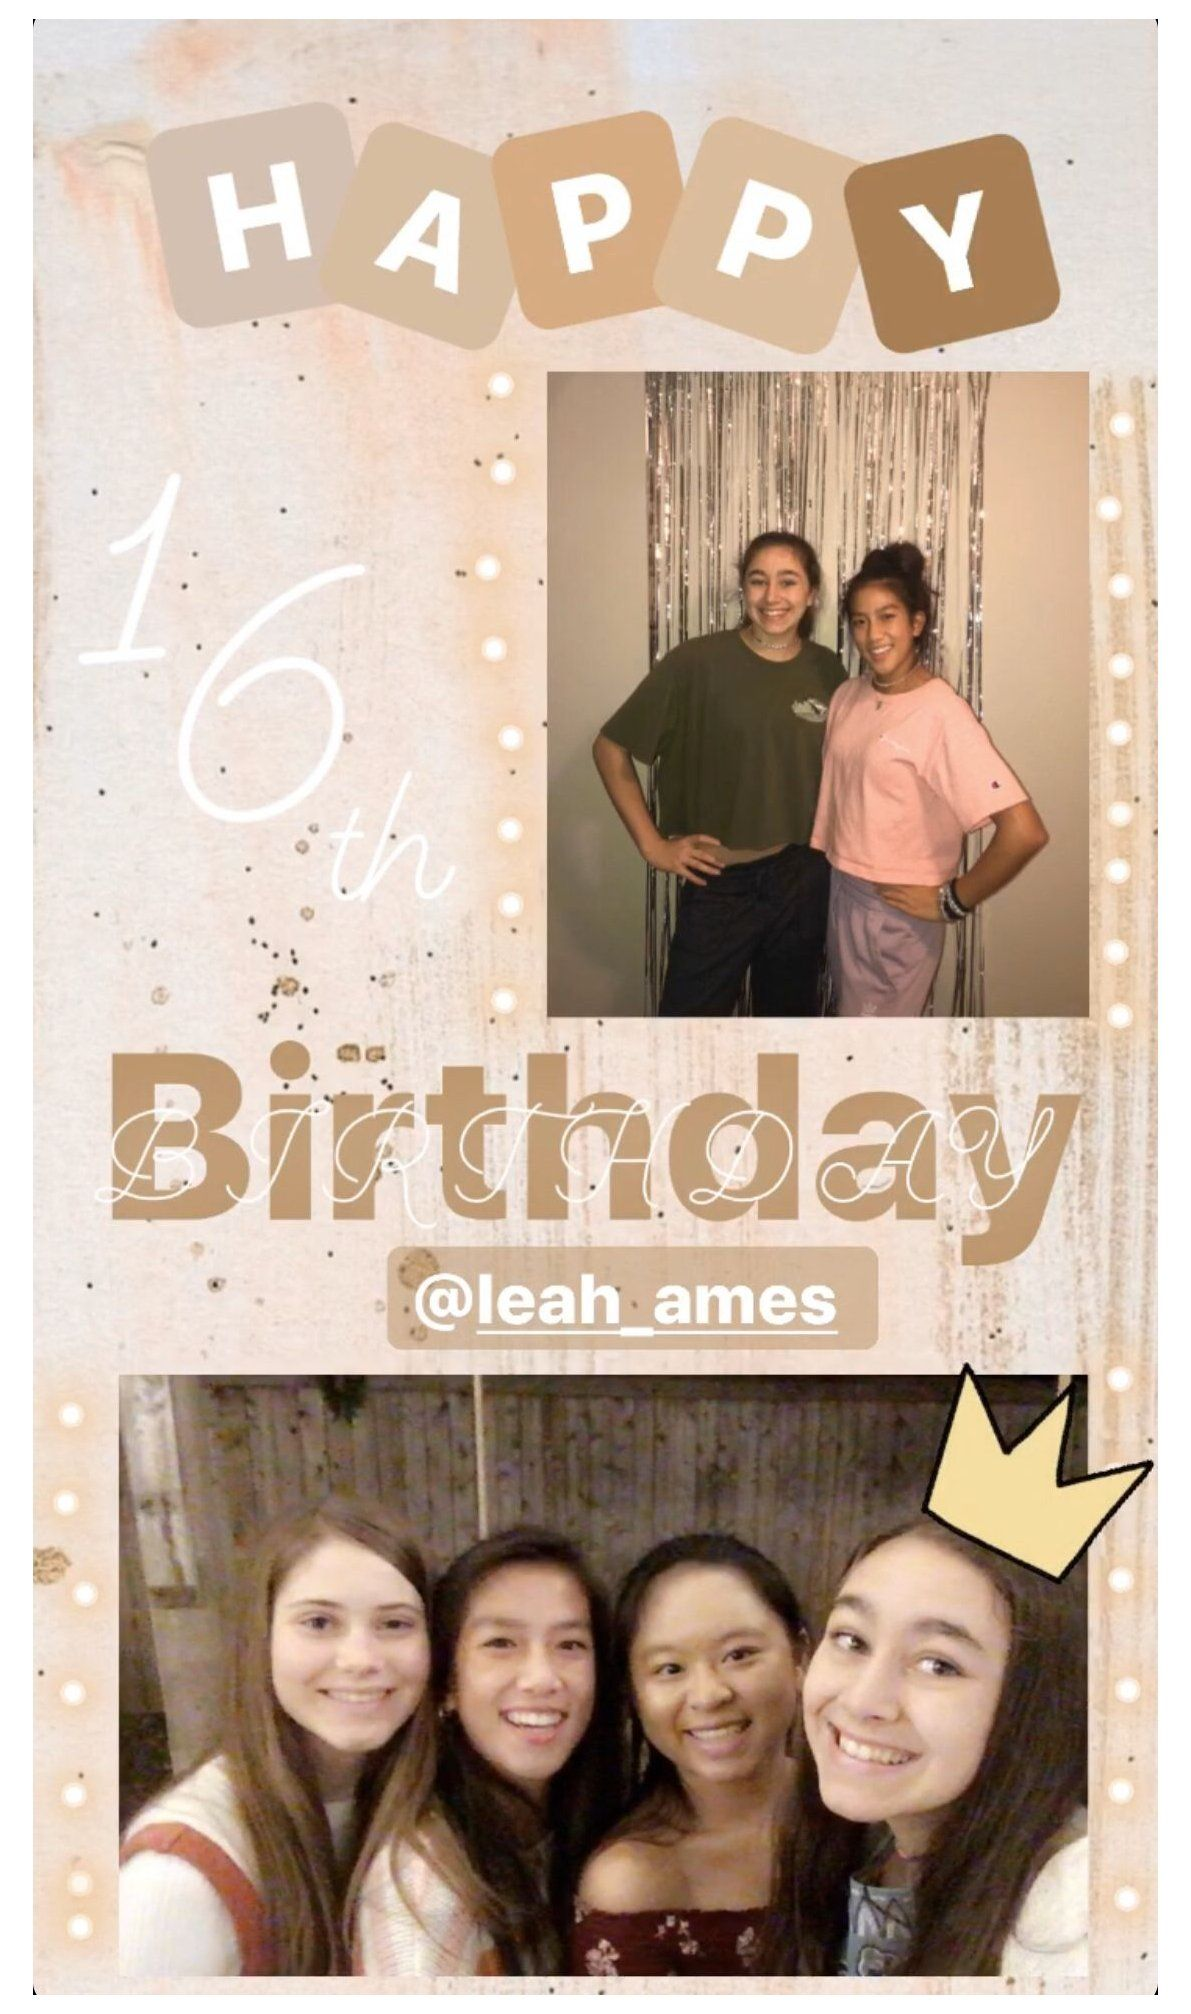 Birthday Story Ideas Happy Birthday Insta Story Template Super Easy Way To Wish In 2020 Birthday Post Instagram Selfie Ideas Instagram Ideas For Instagram Photos